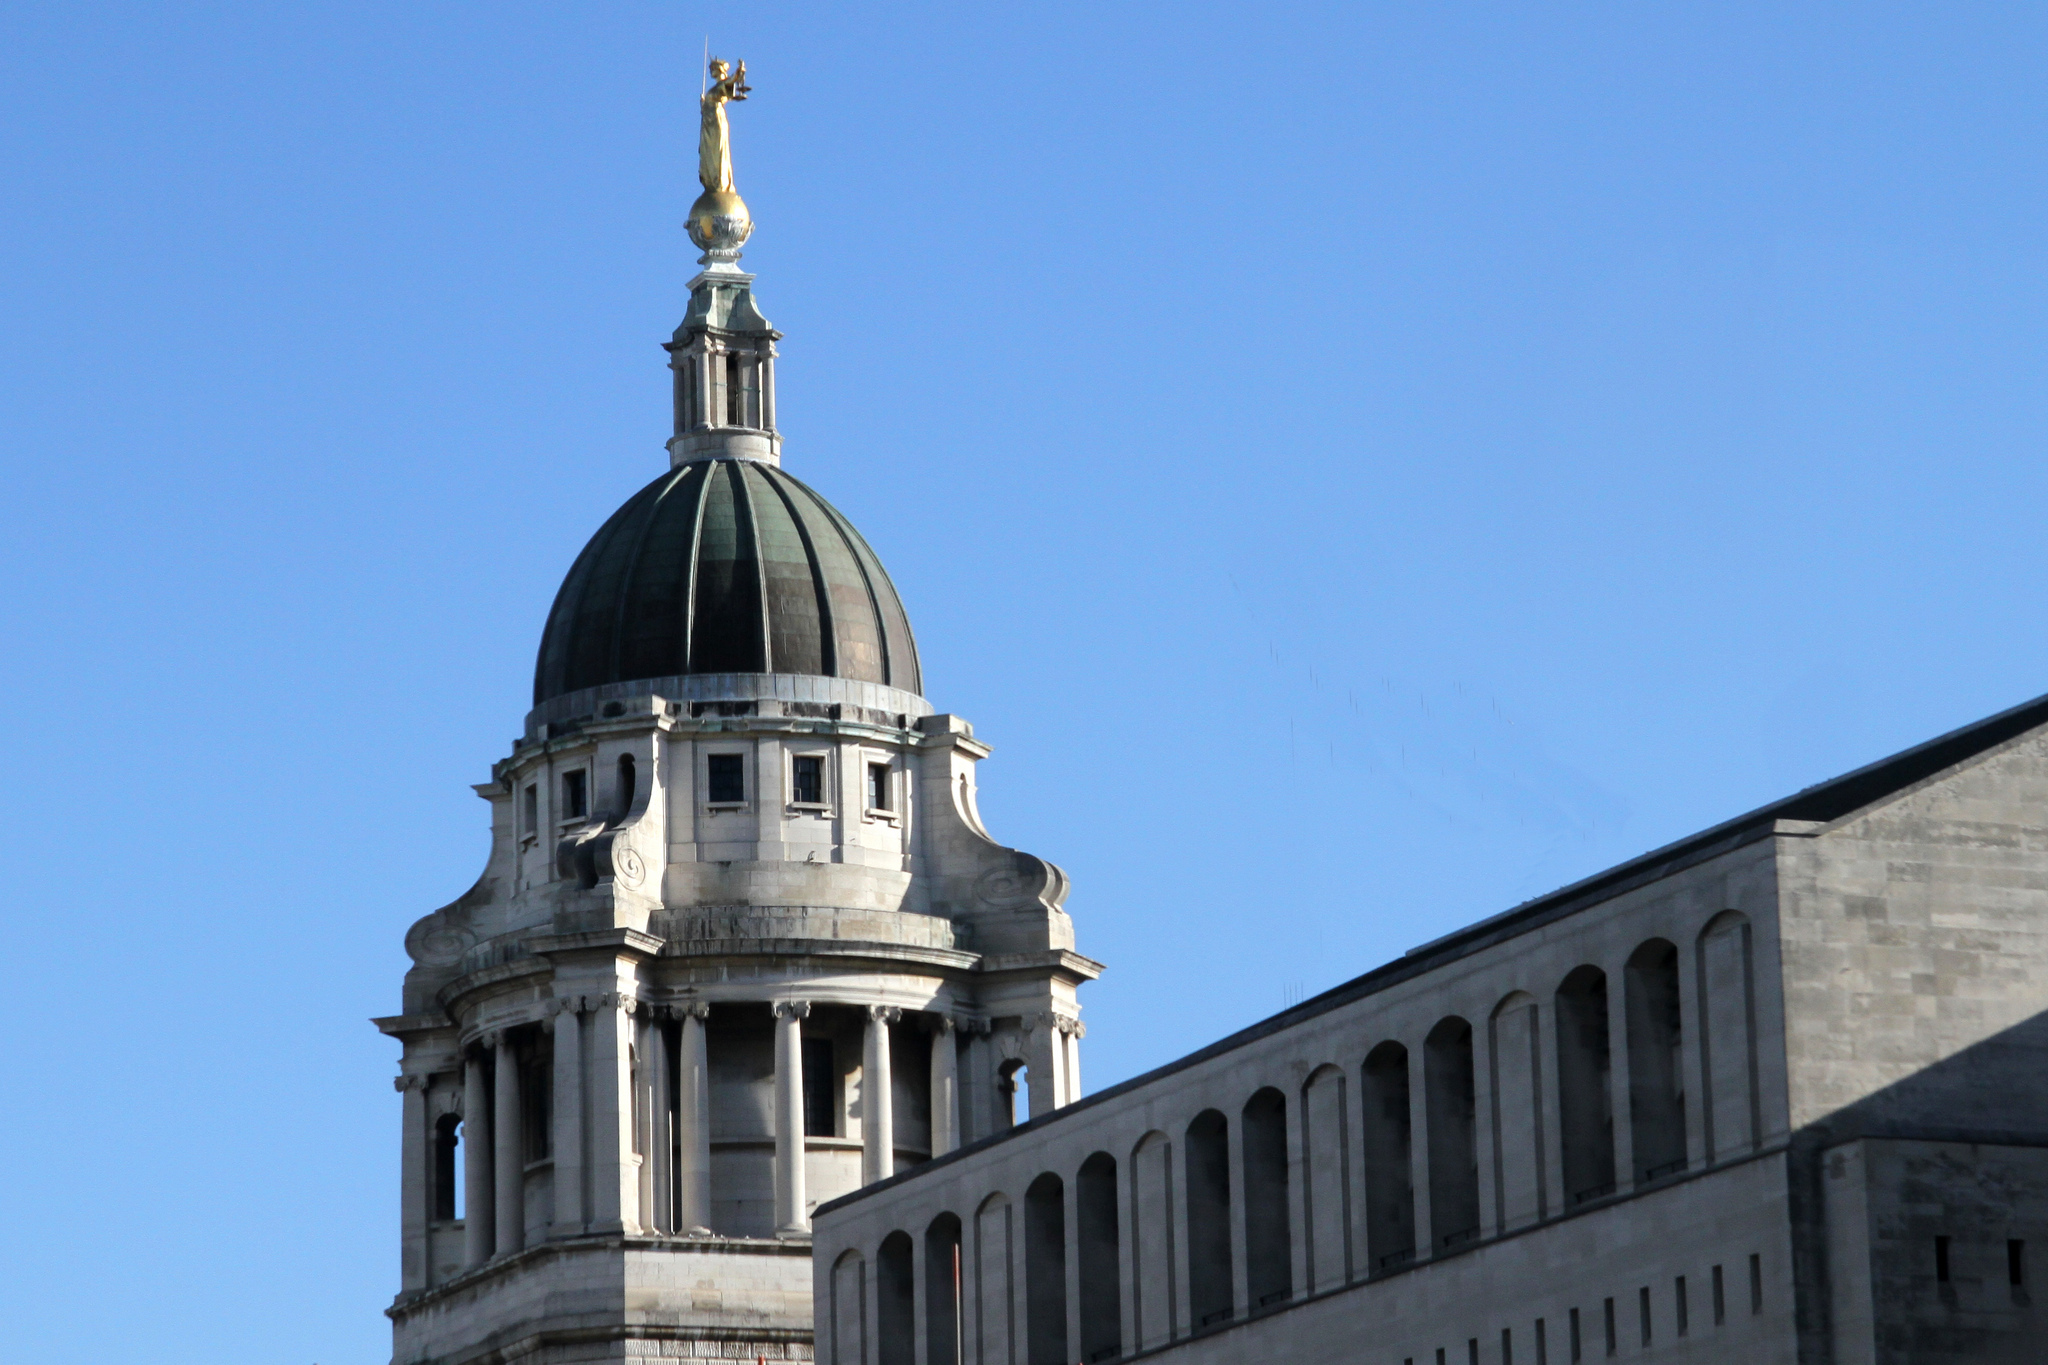 The plea hearing took place at the Old Bailey (pictured). Image: Ronnie Macdonald via Flickr.com